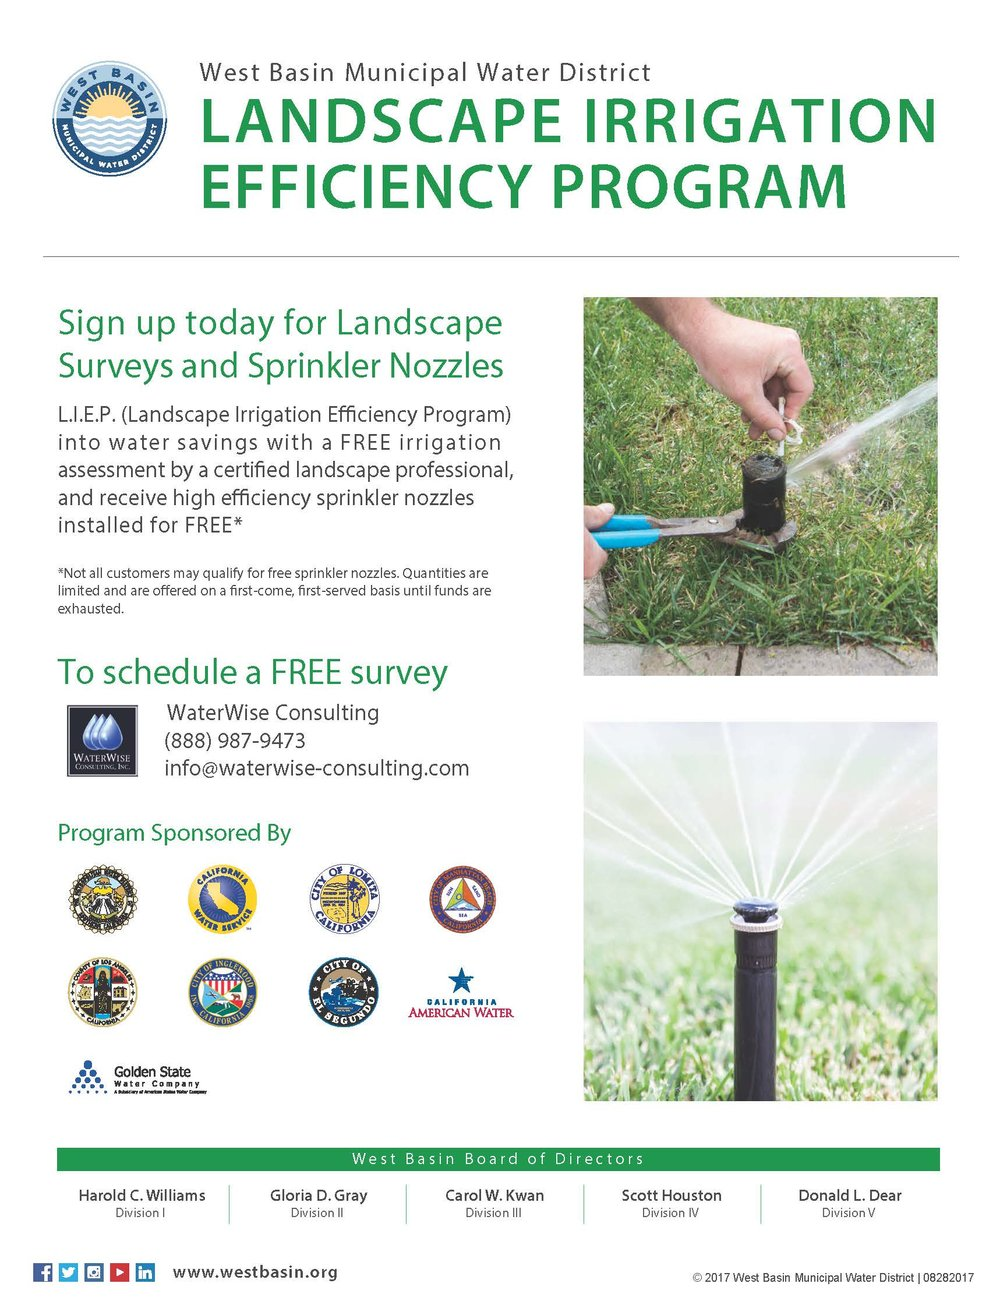 Landscape Irrigation Efficiency Program